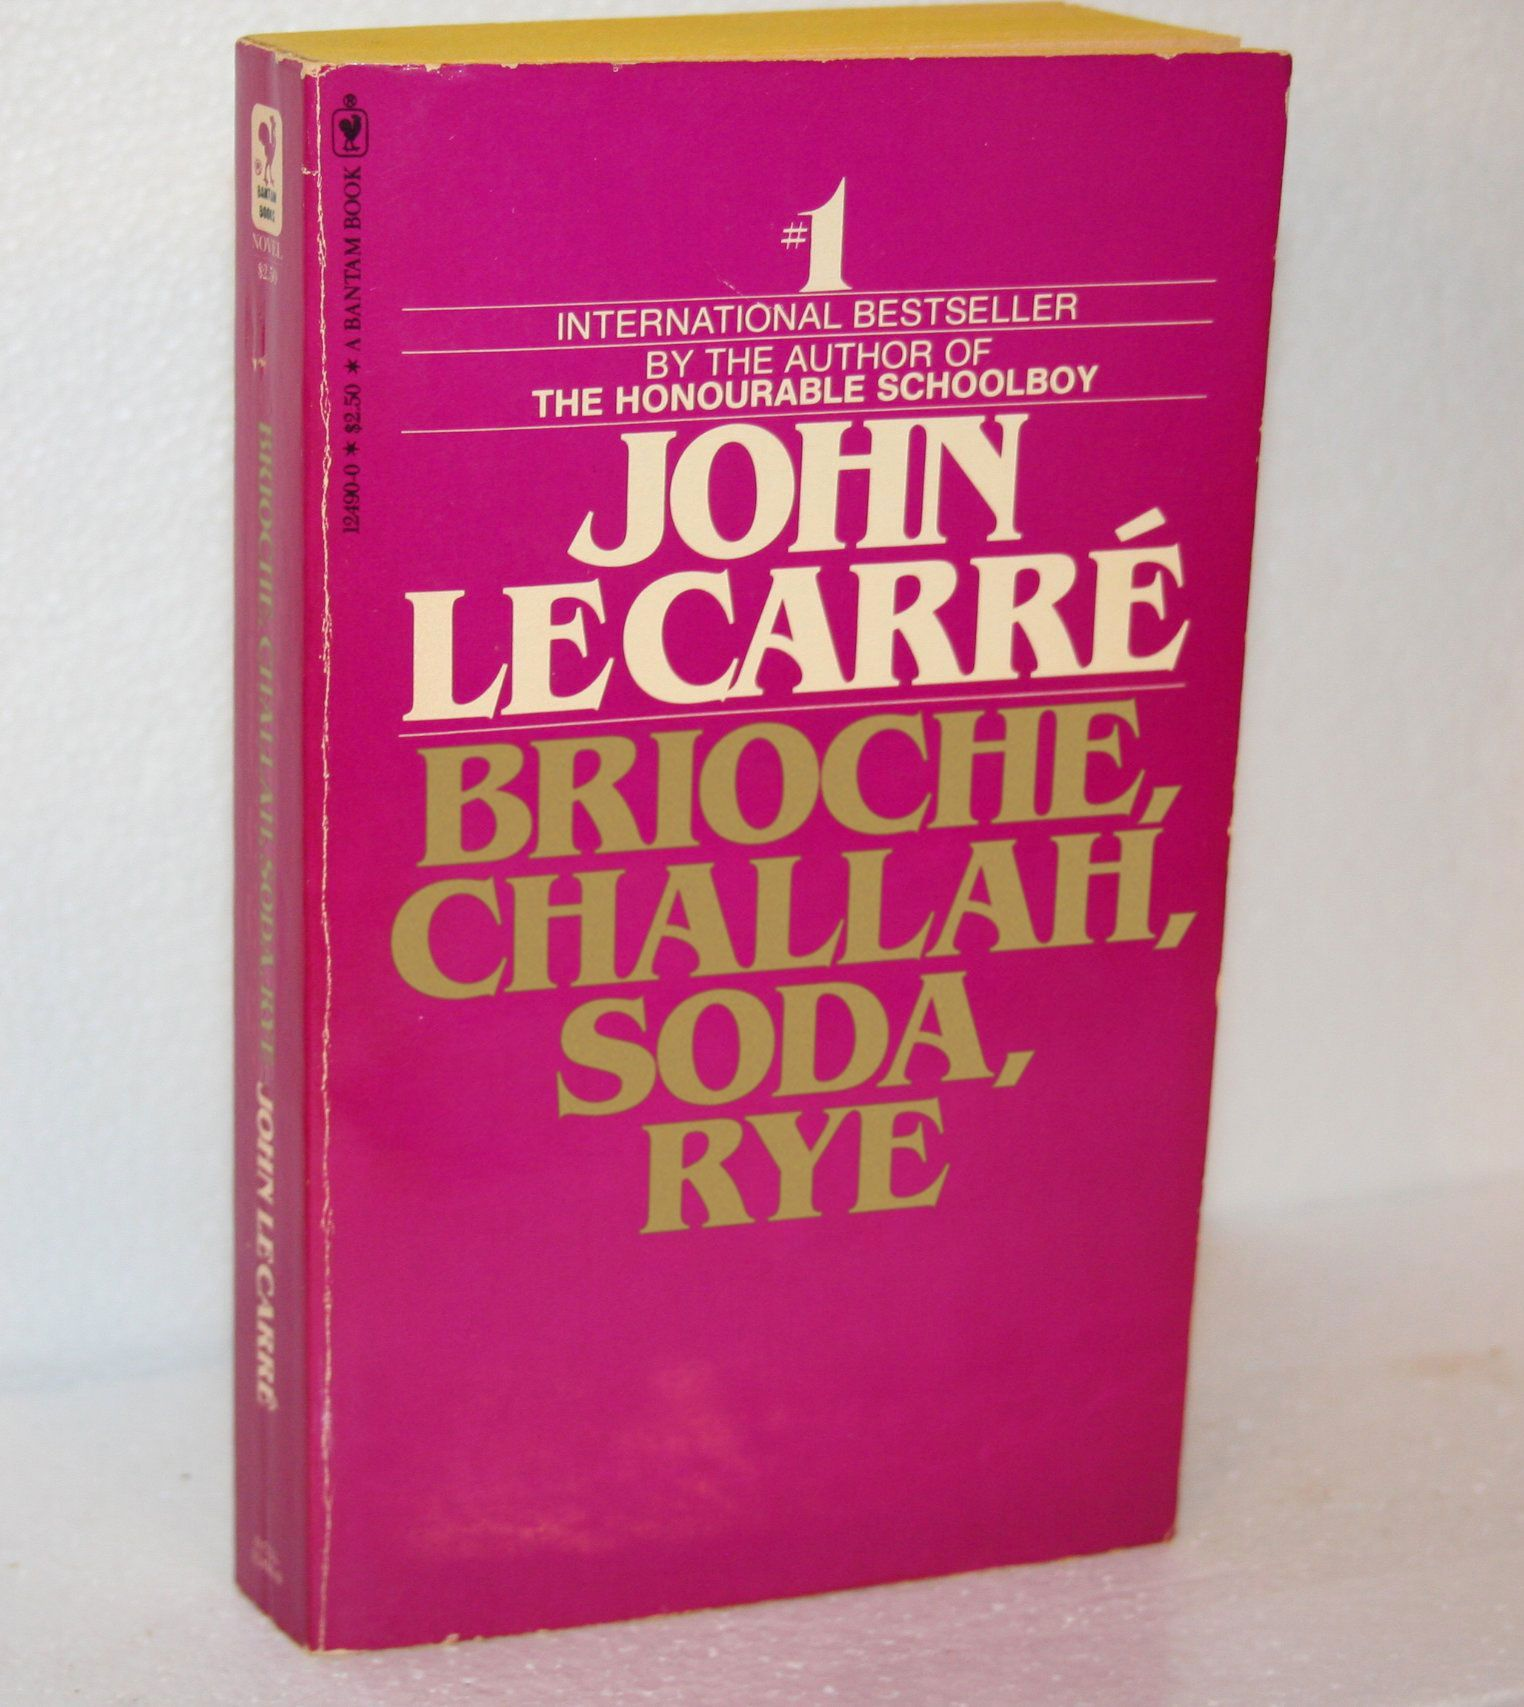 Brioche, Challah, Soda, Rye (Tinker, Tailor, Soldier, Spy, by John le Carré)